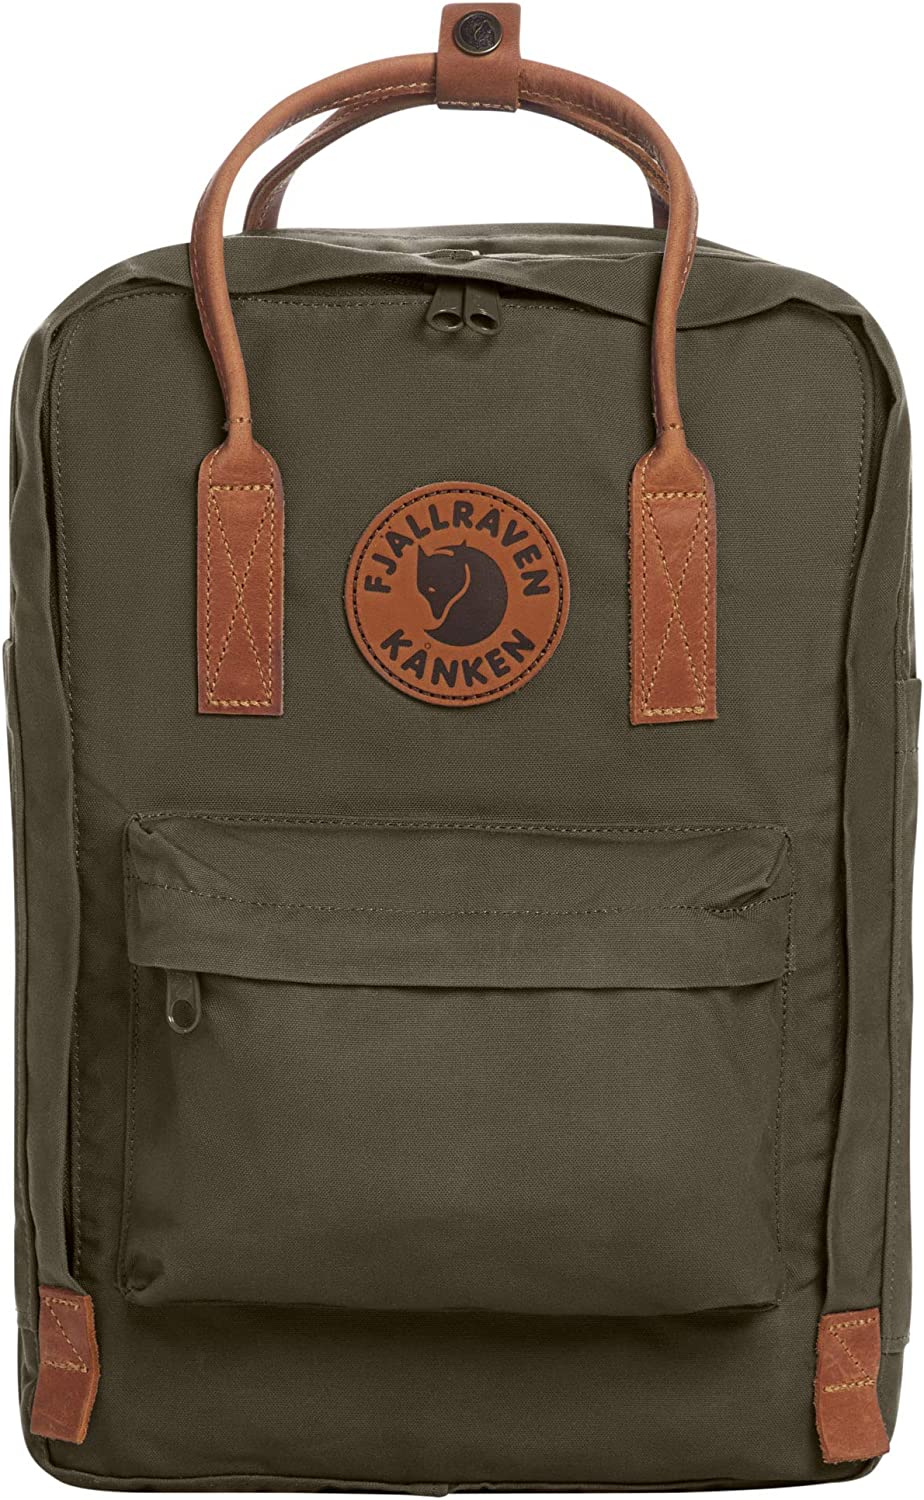 "Fjallraven, Kanken No. 2 Laptop 15"" Backpack for Everyday"